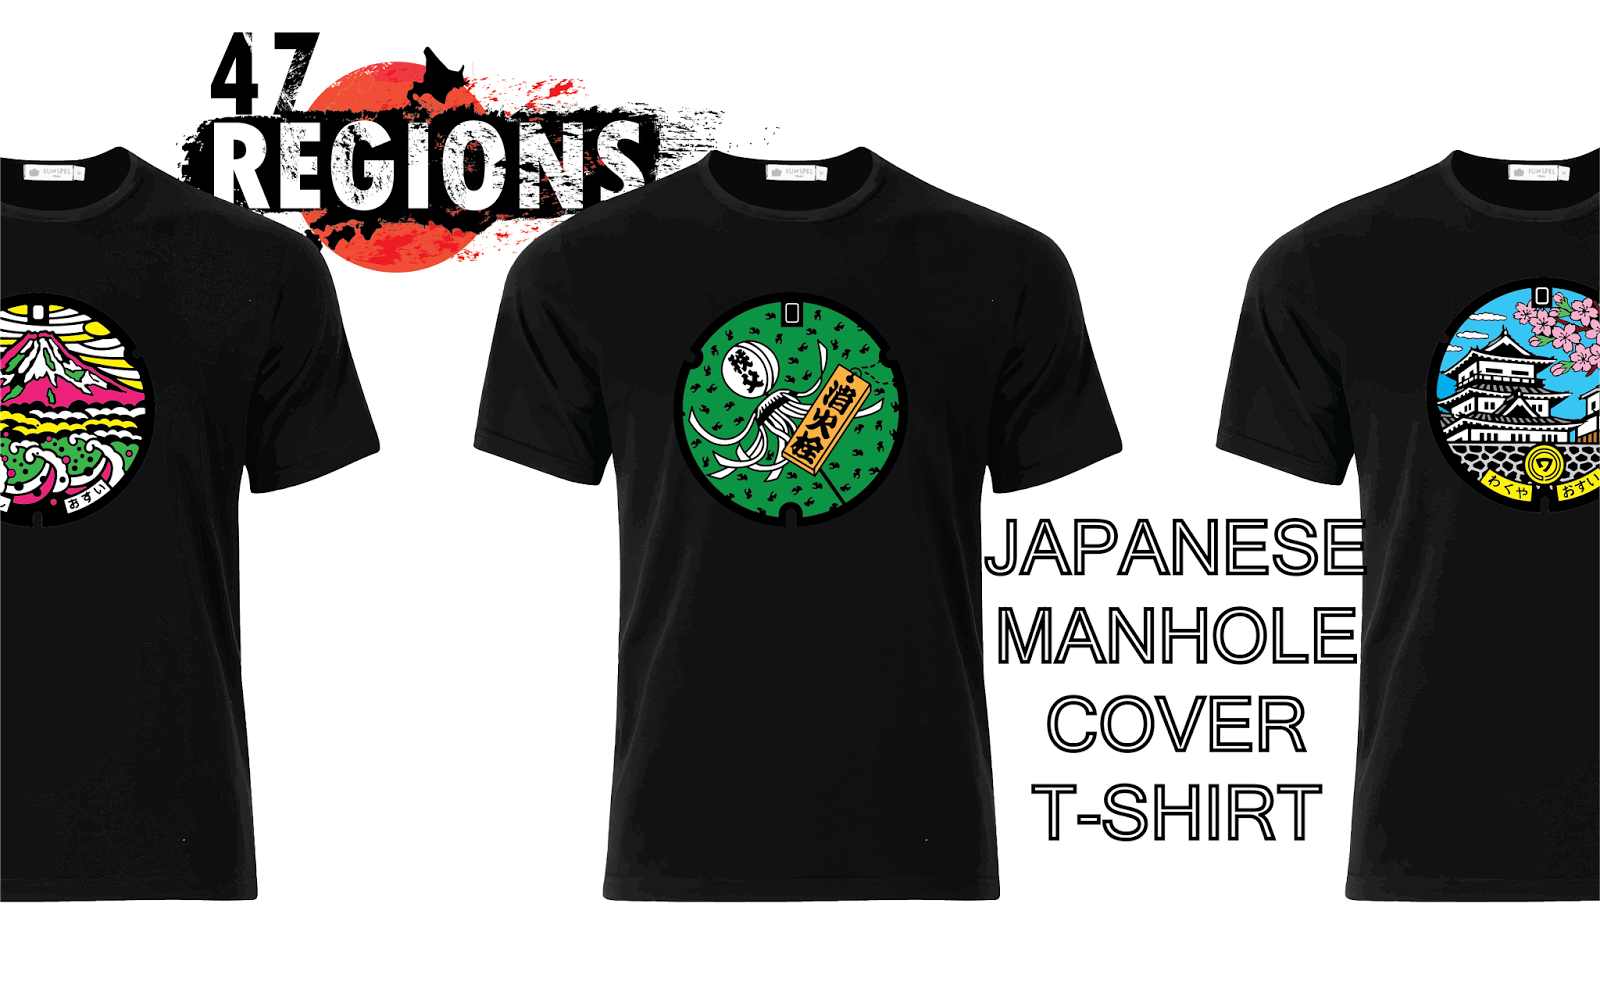 47regions Manhole T Shirts Japan All Over Origami Sword Nakano Kay Youtube